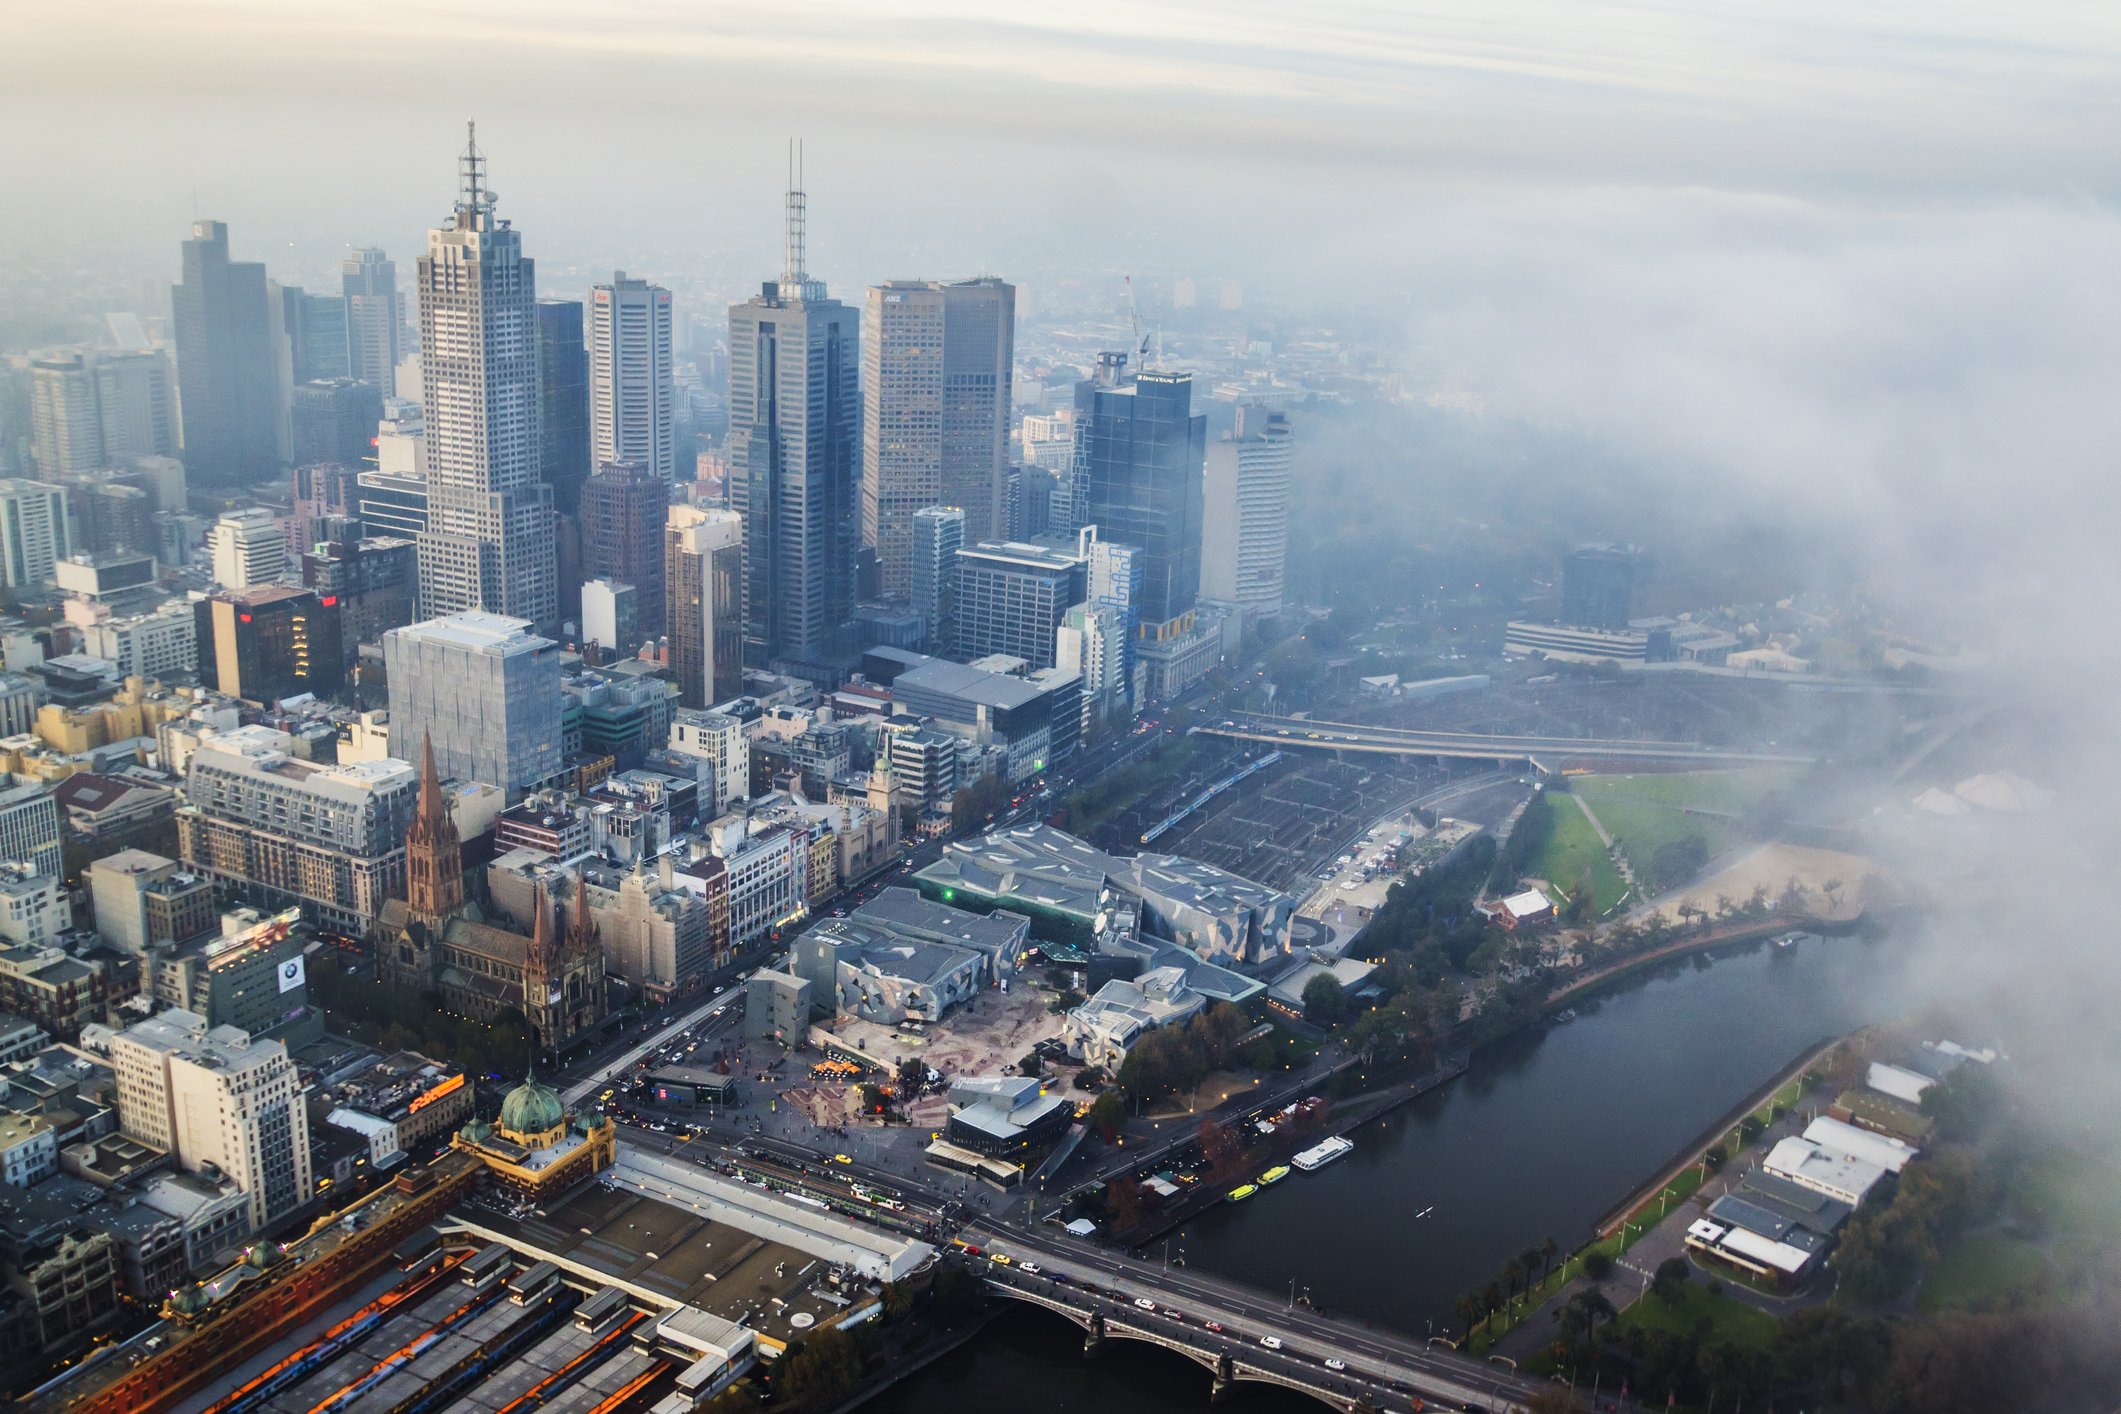 Melbourne's property listings have jumped 32.2 per cent year-on-year, says SQM.